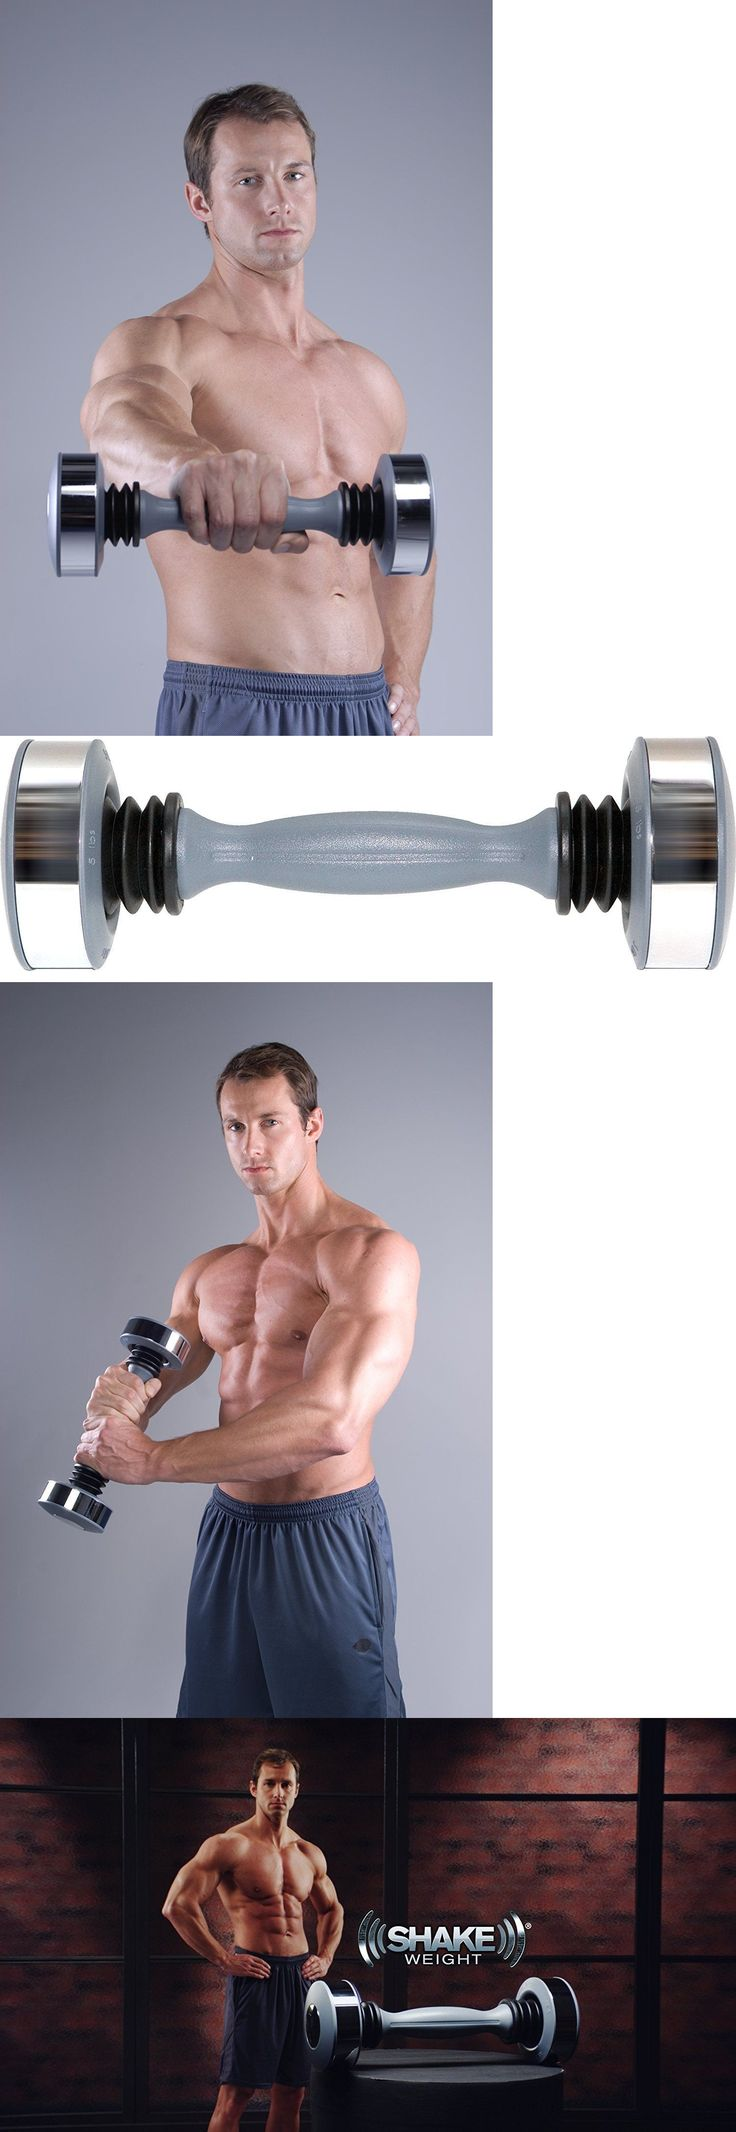 Dumbbells 137865: Shake Weight Training Dumbbell Men Weights Workout Gym Arms Dvd Exercise Fitness -> BUY IT NOW ONLY: $35.95 on eBay!